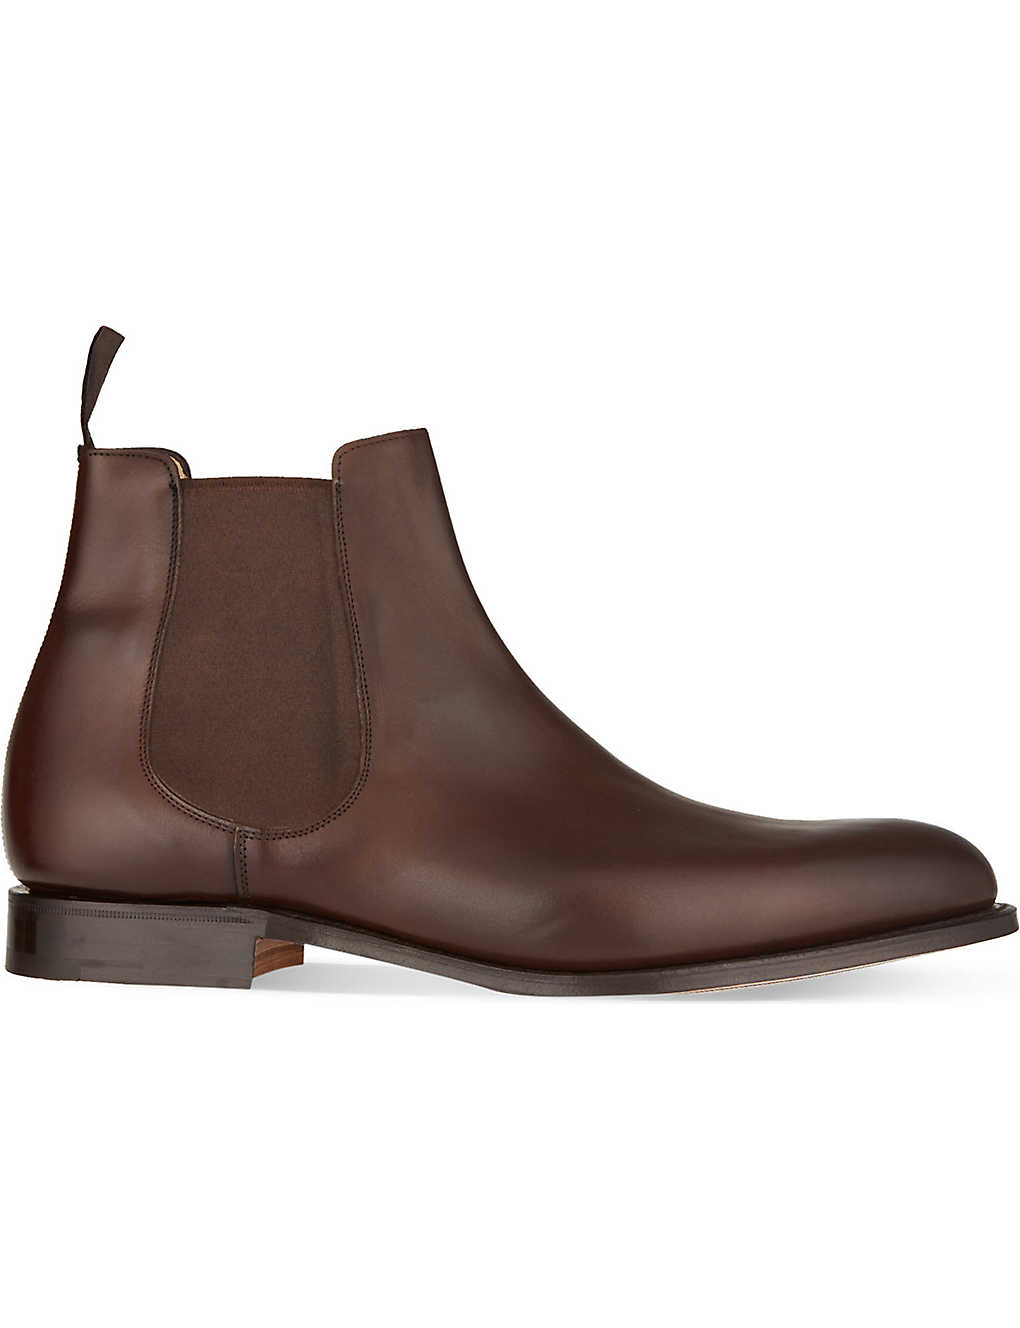 CHURCH: Houston leather Chelsea boots